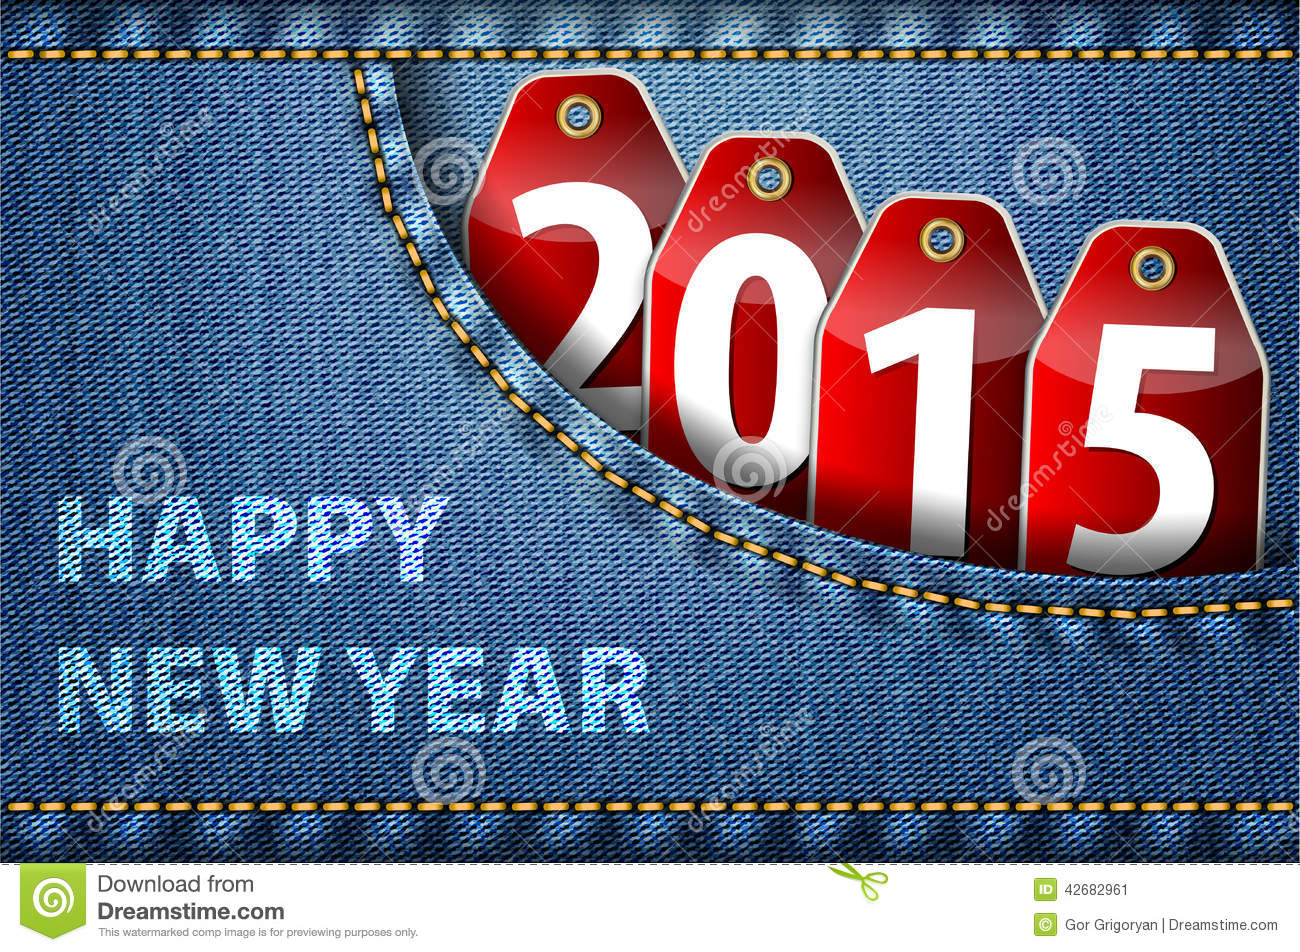 Happy New Year Greetings And 2015 Digits On Jeans Stock Vector